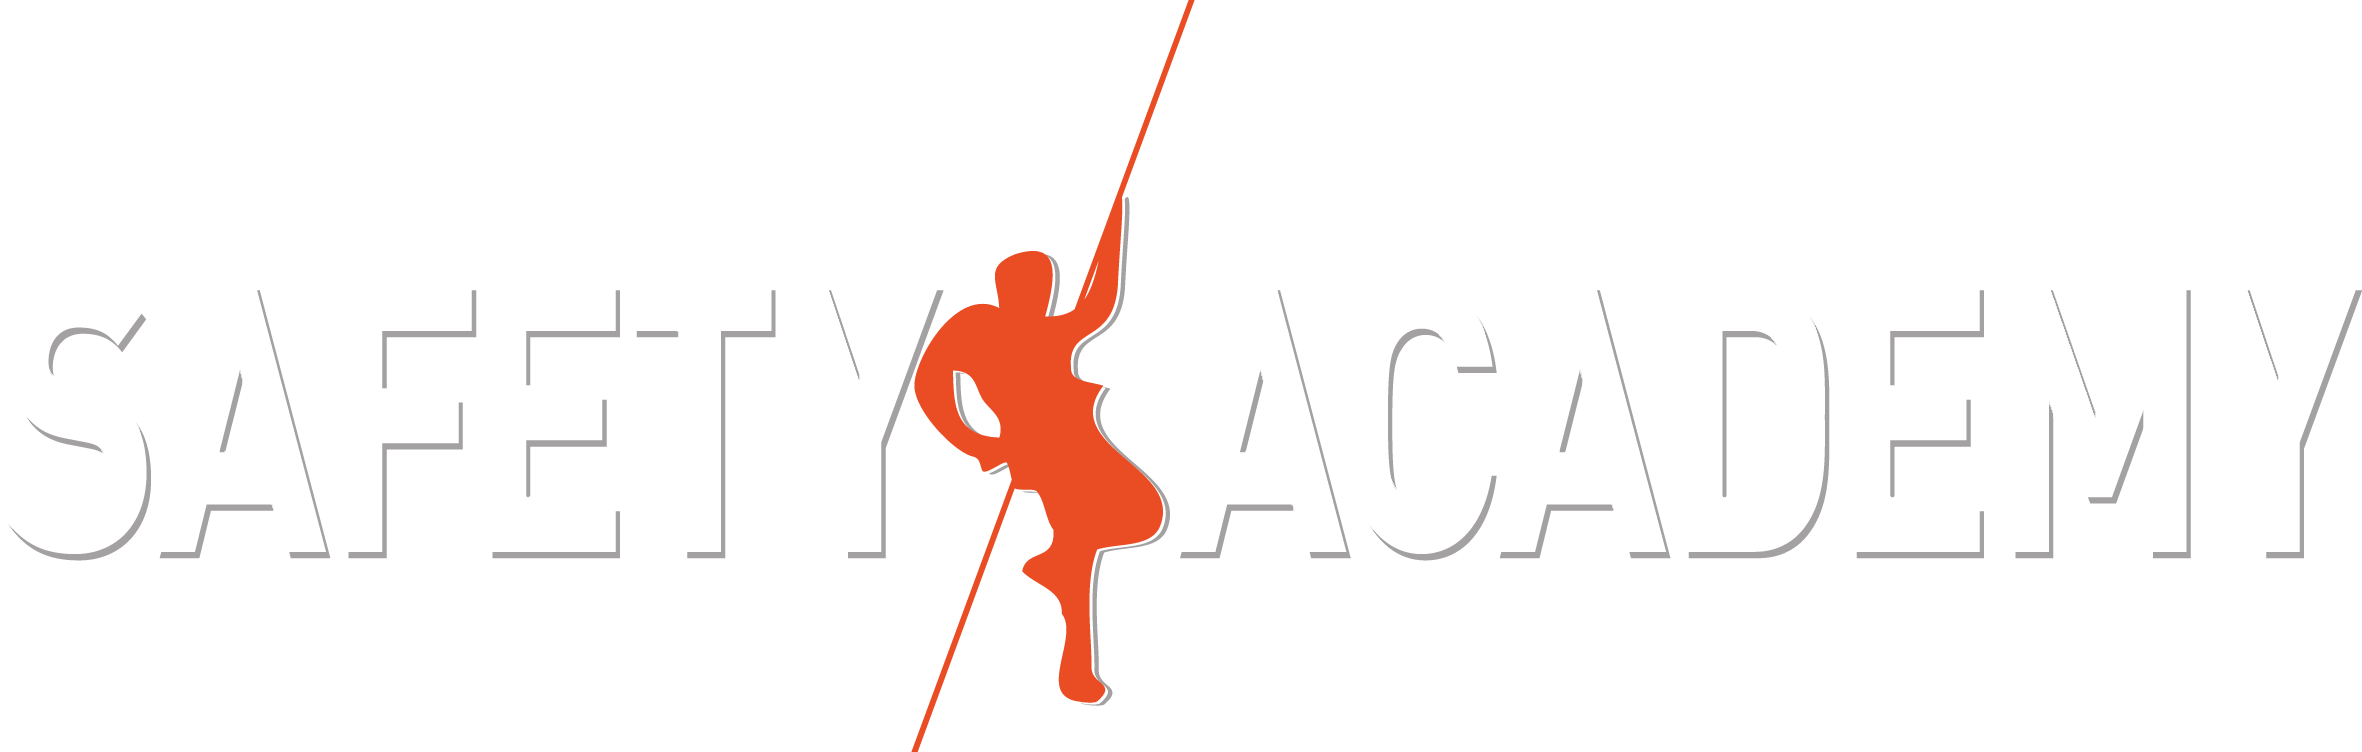 Safety Academy